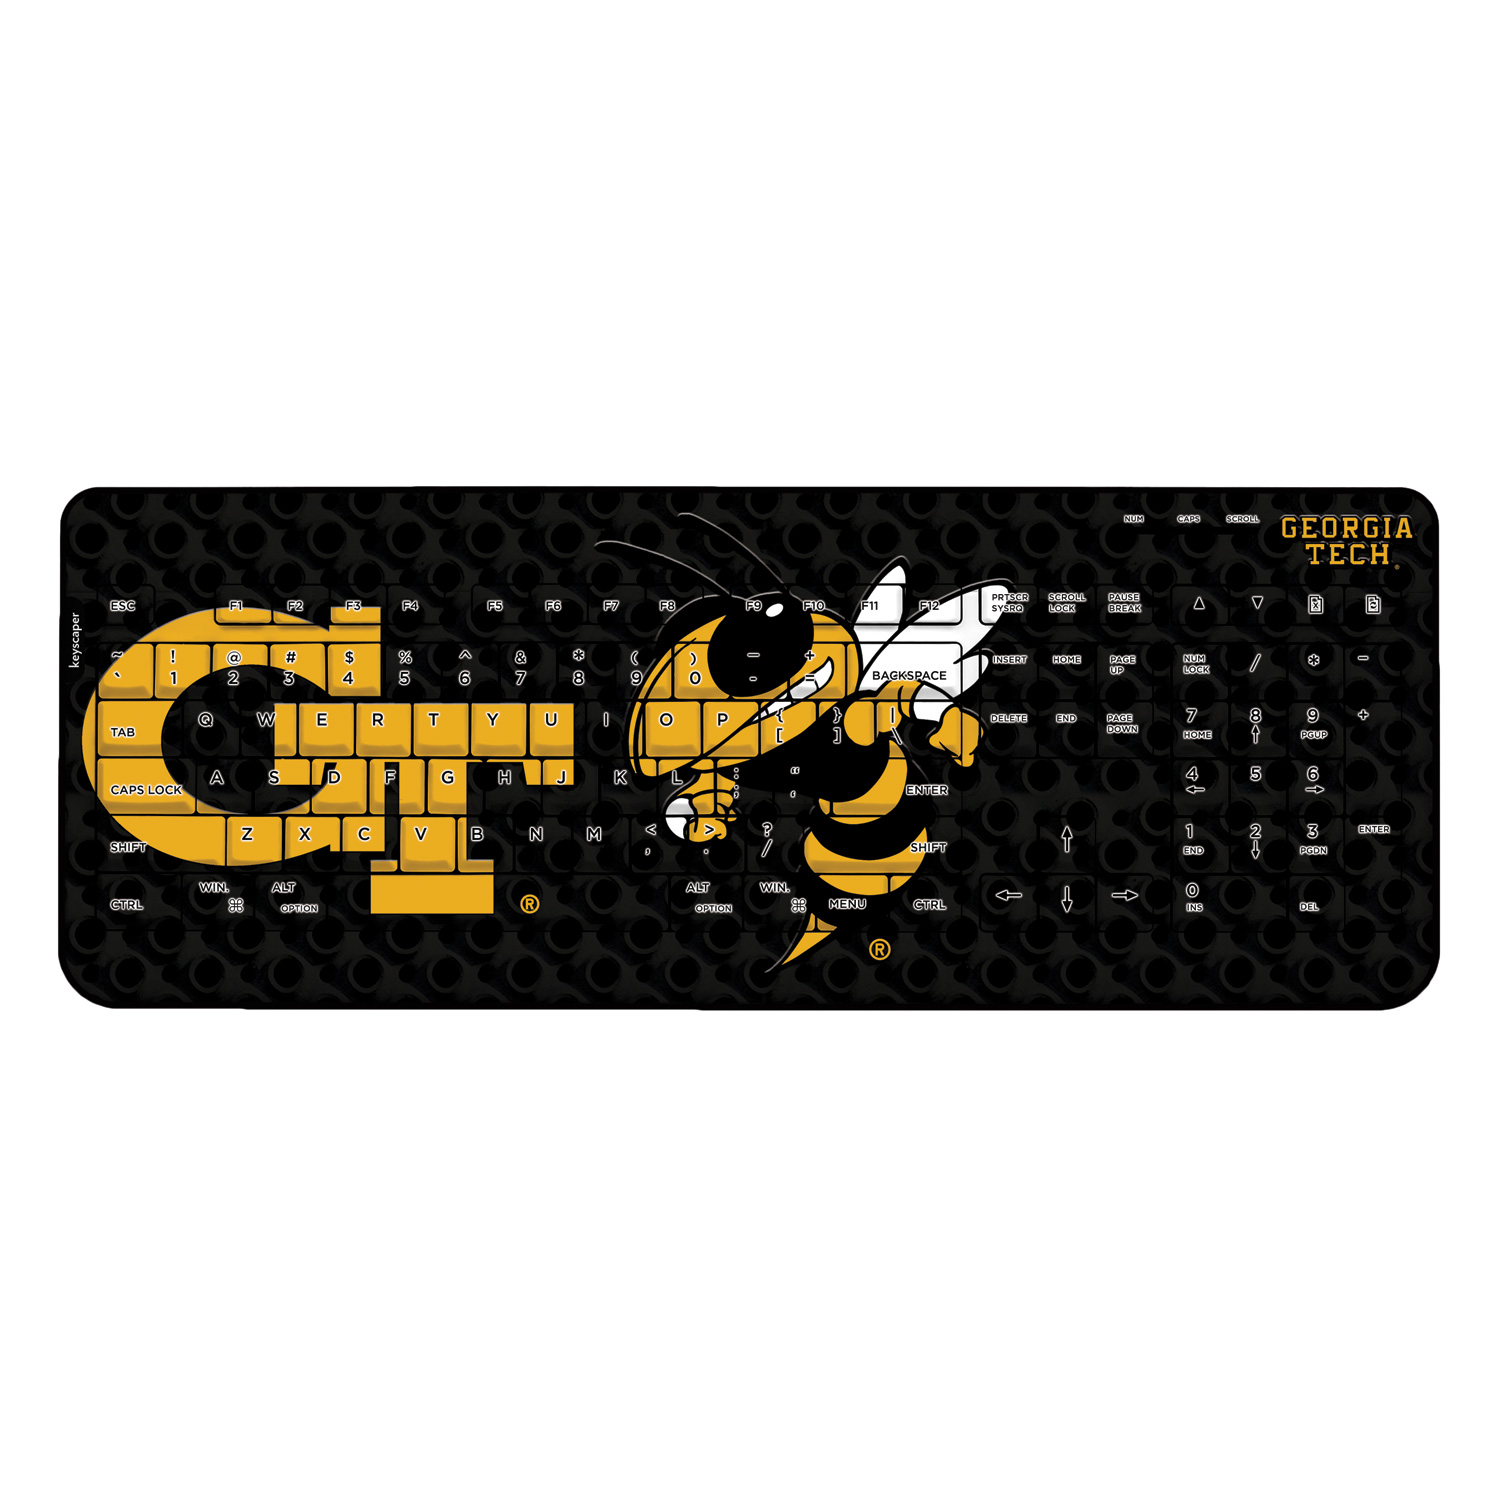 Georgia Tech Wireless USB Keyboard NCAA